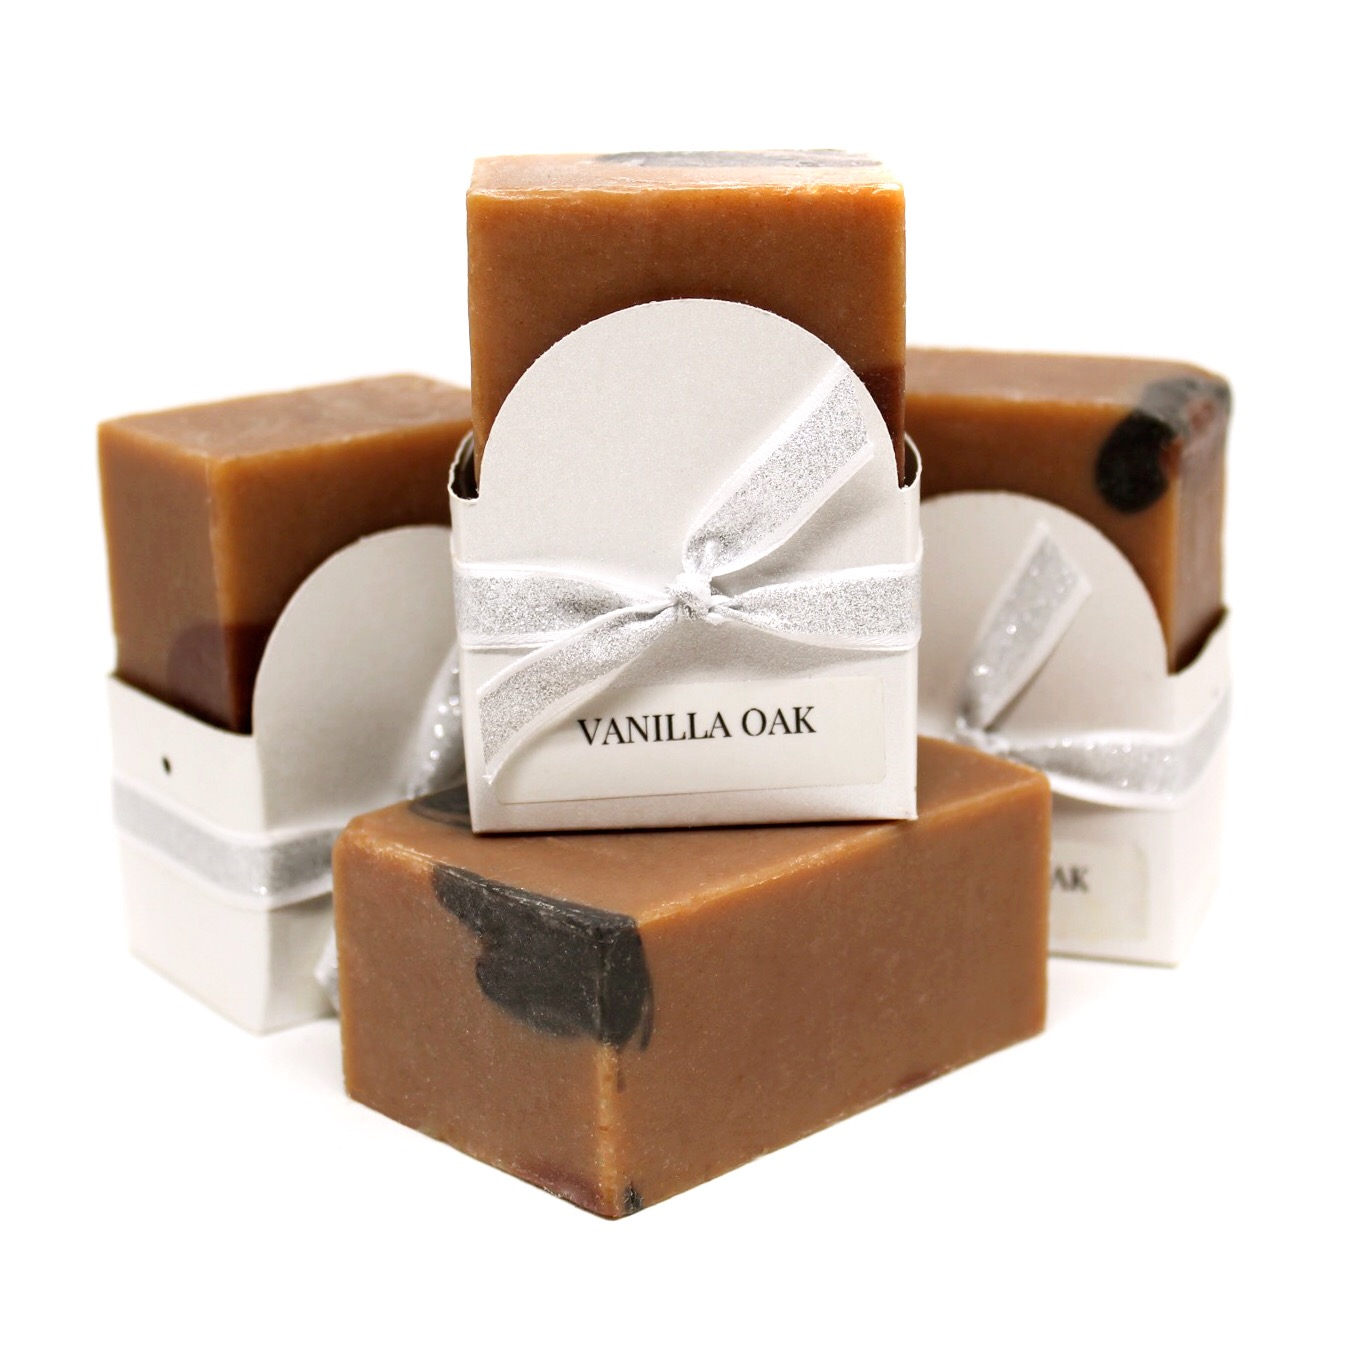 Vanilla Oak Goat Milk Soap